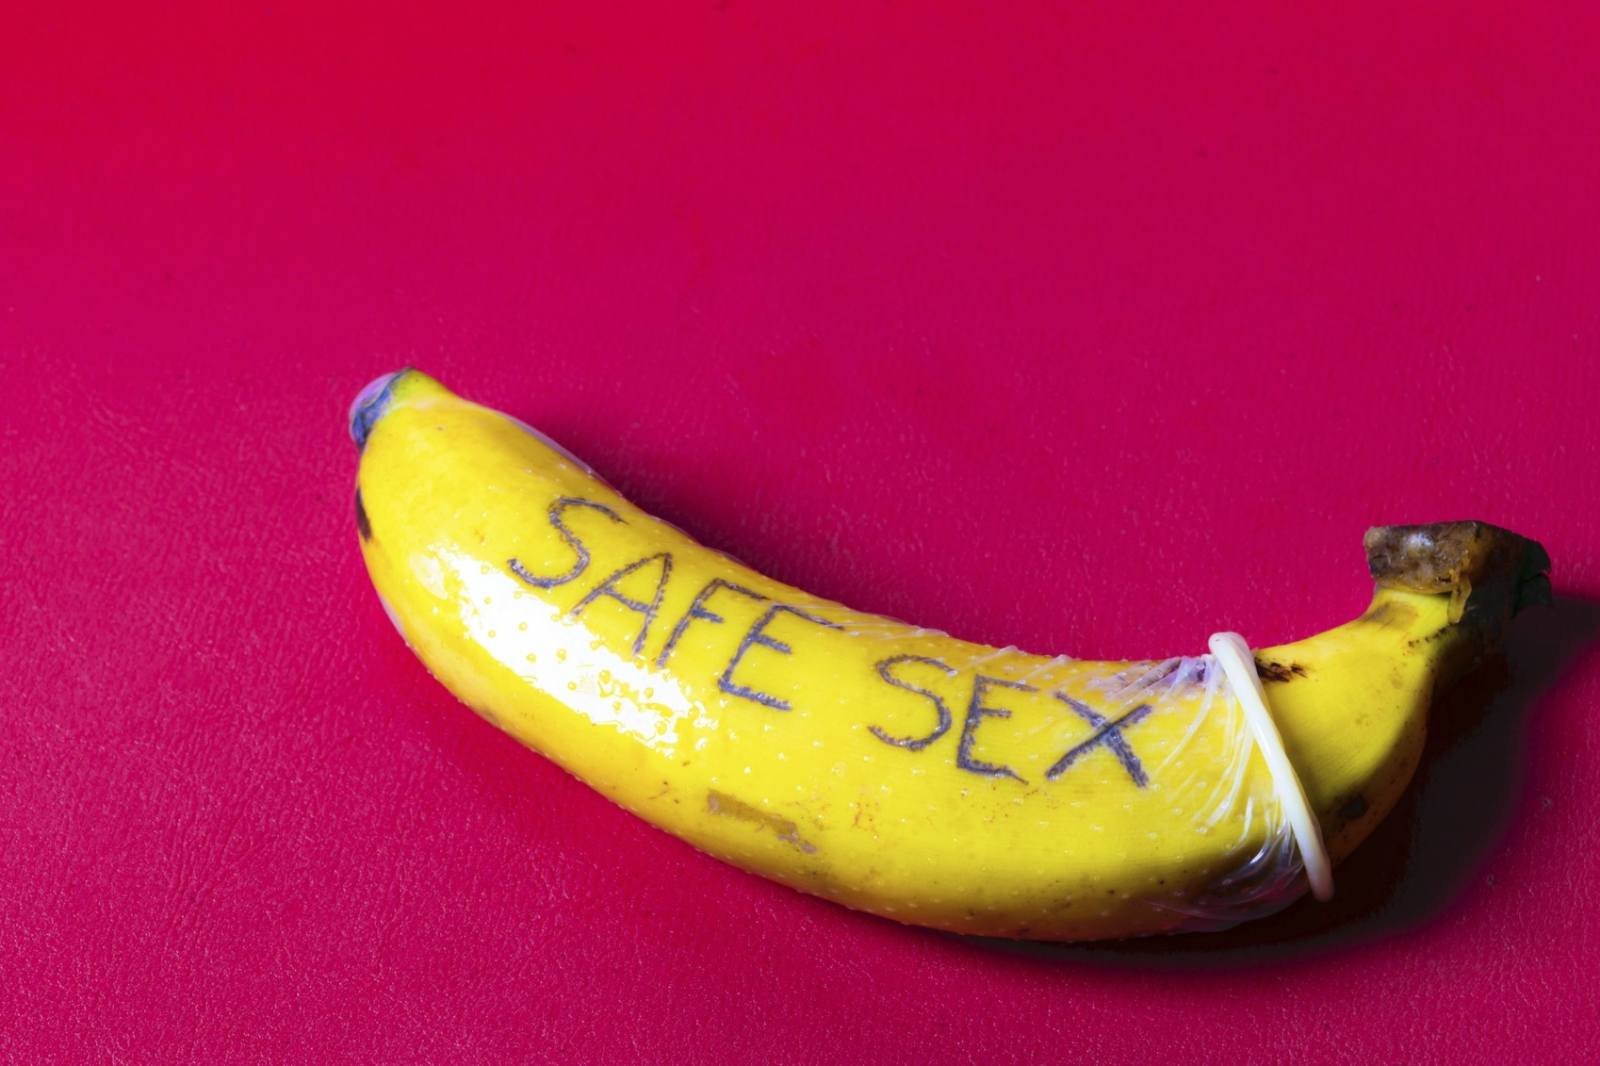 safe sex education